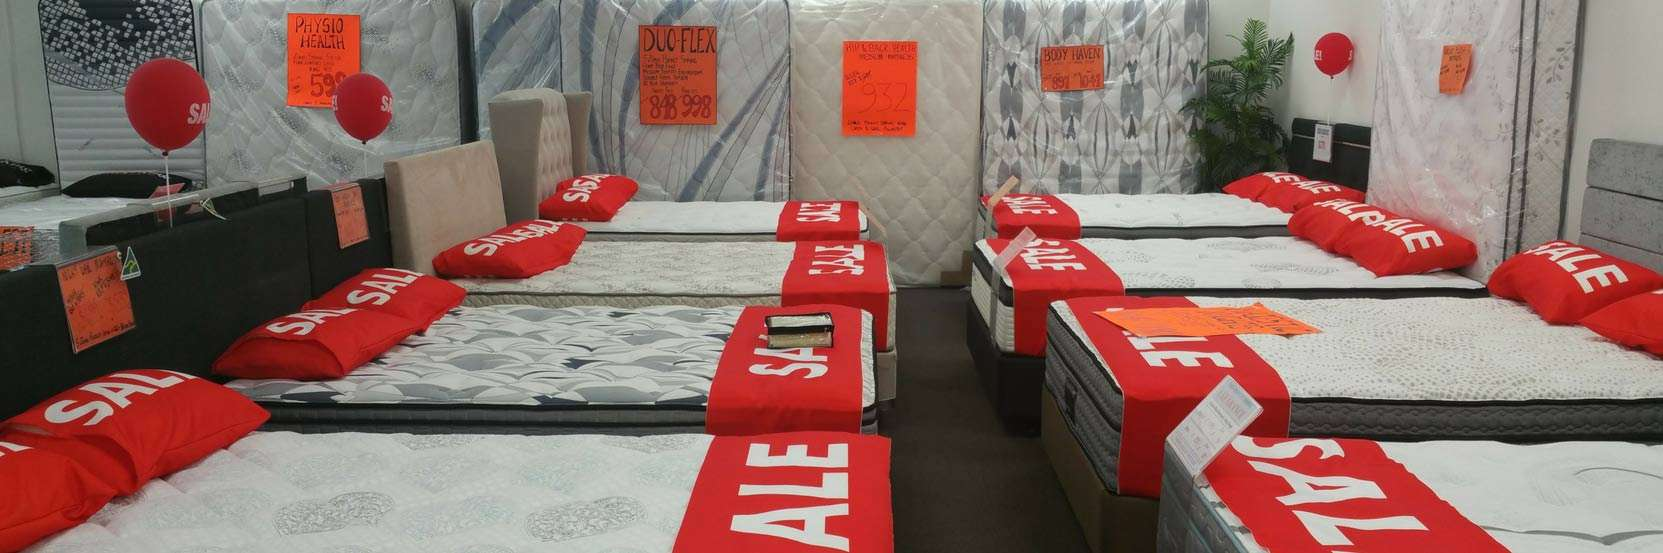 Relax Bedding Factory Liquidation